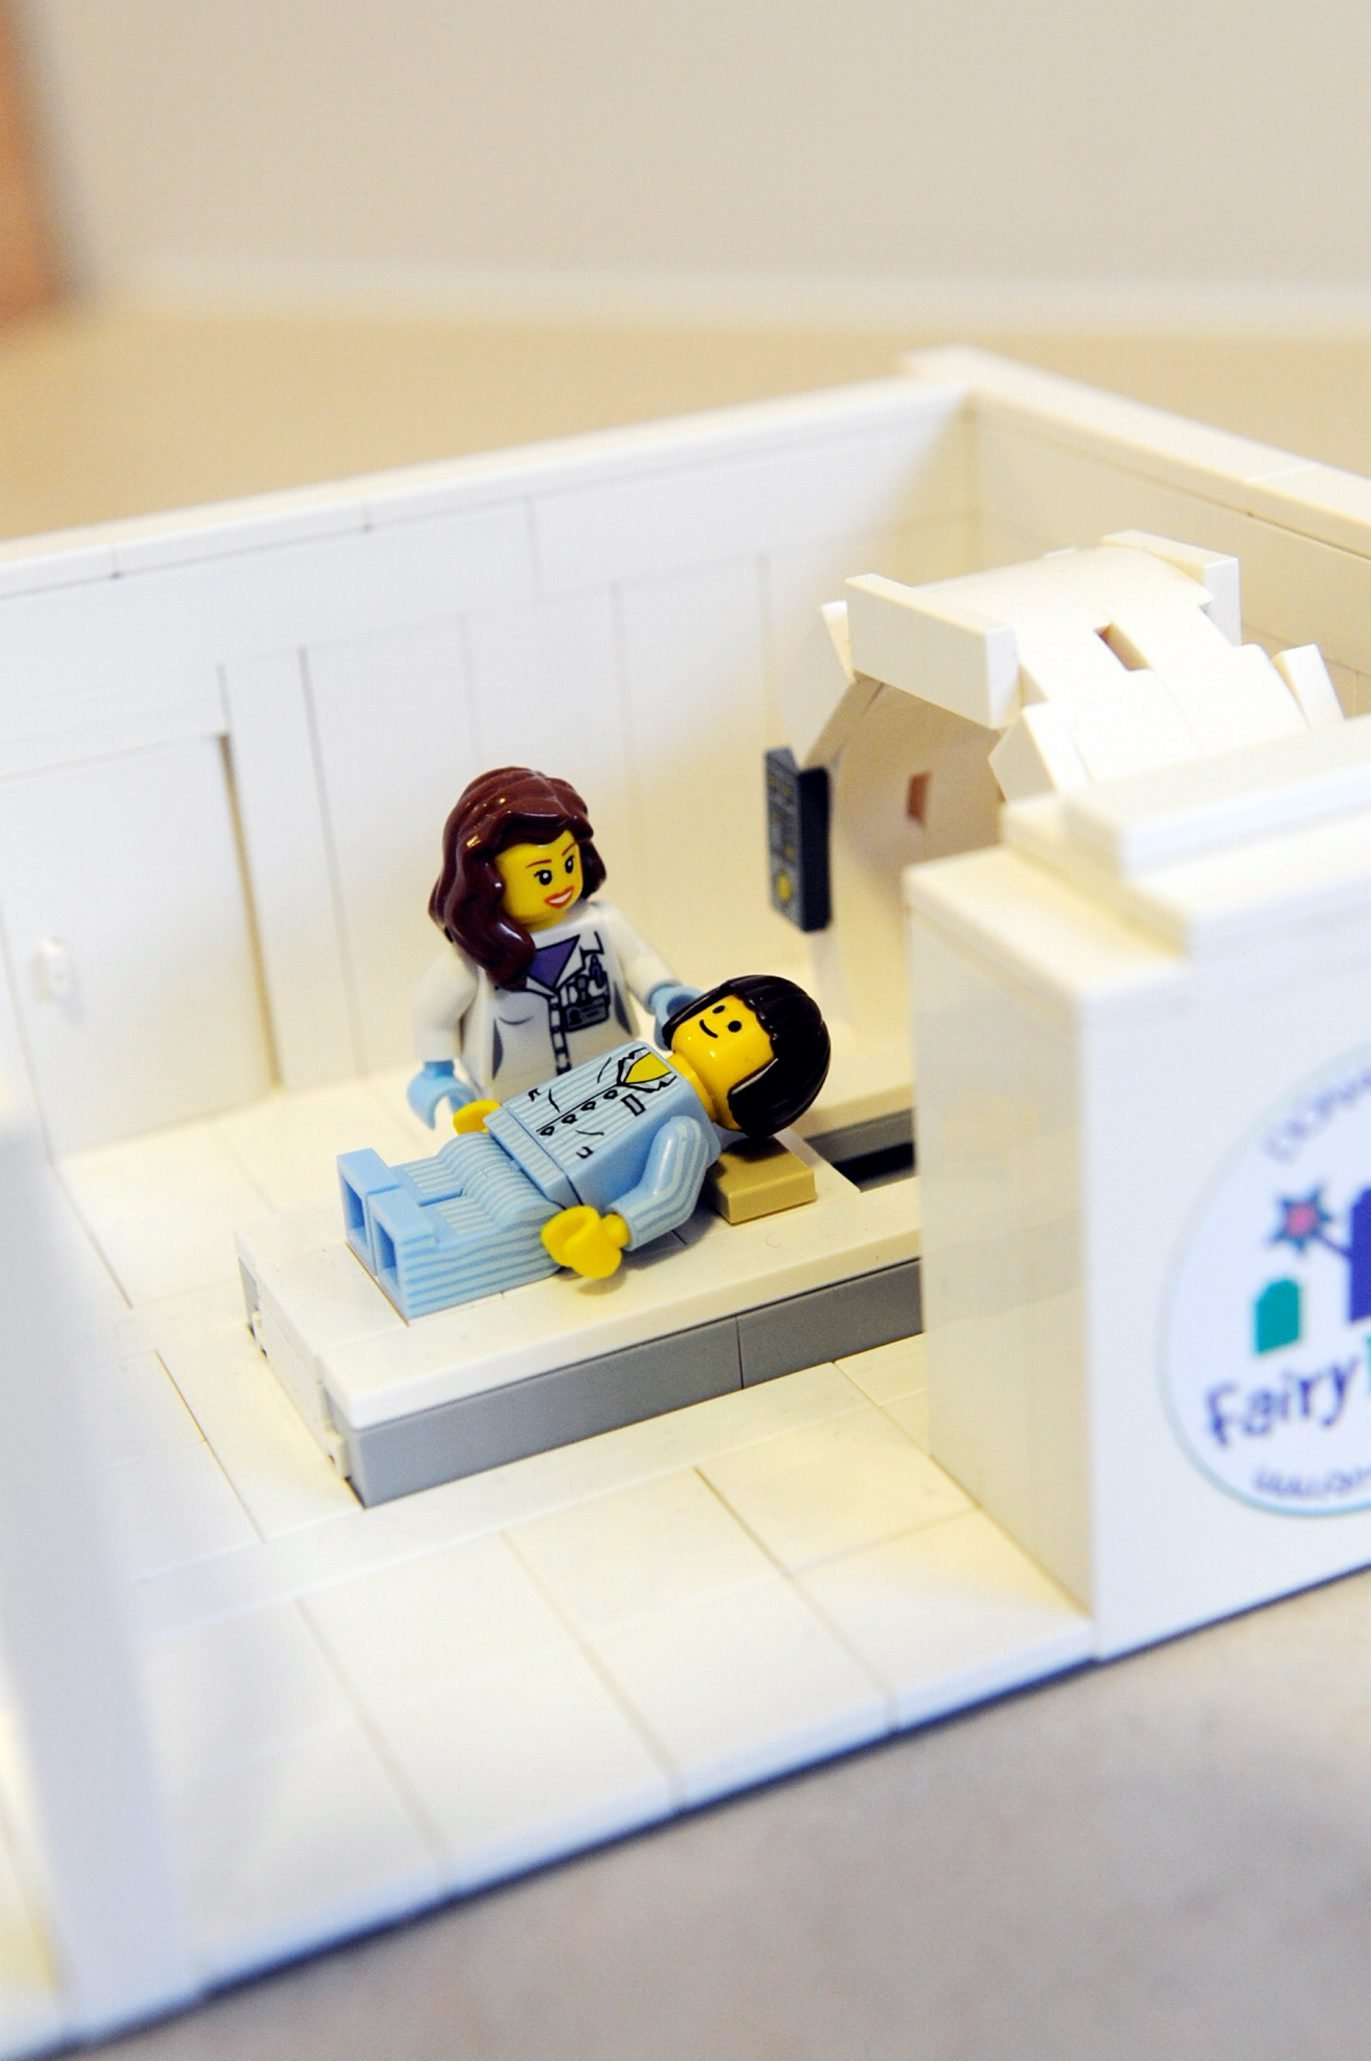 Breightmet man builds MRI scanner out of Lego   The Bolton News Breightmet man builds MRI scanner out of Lego